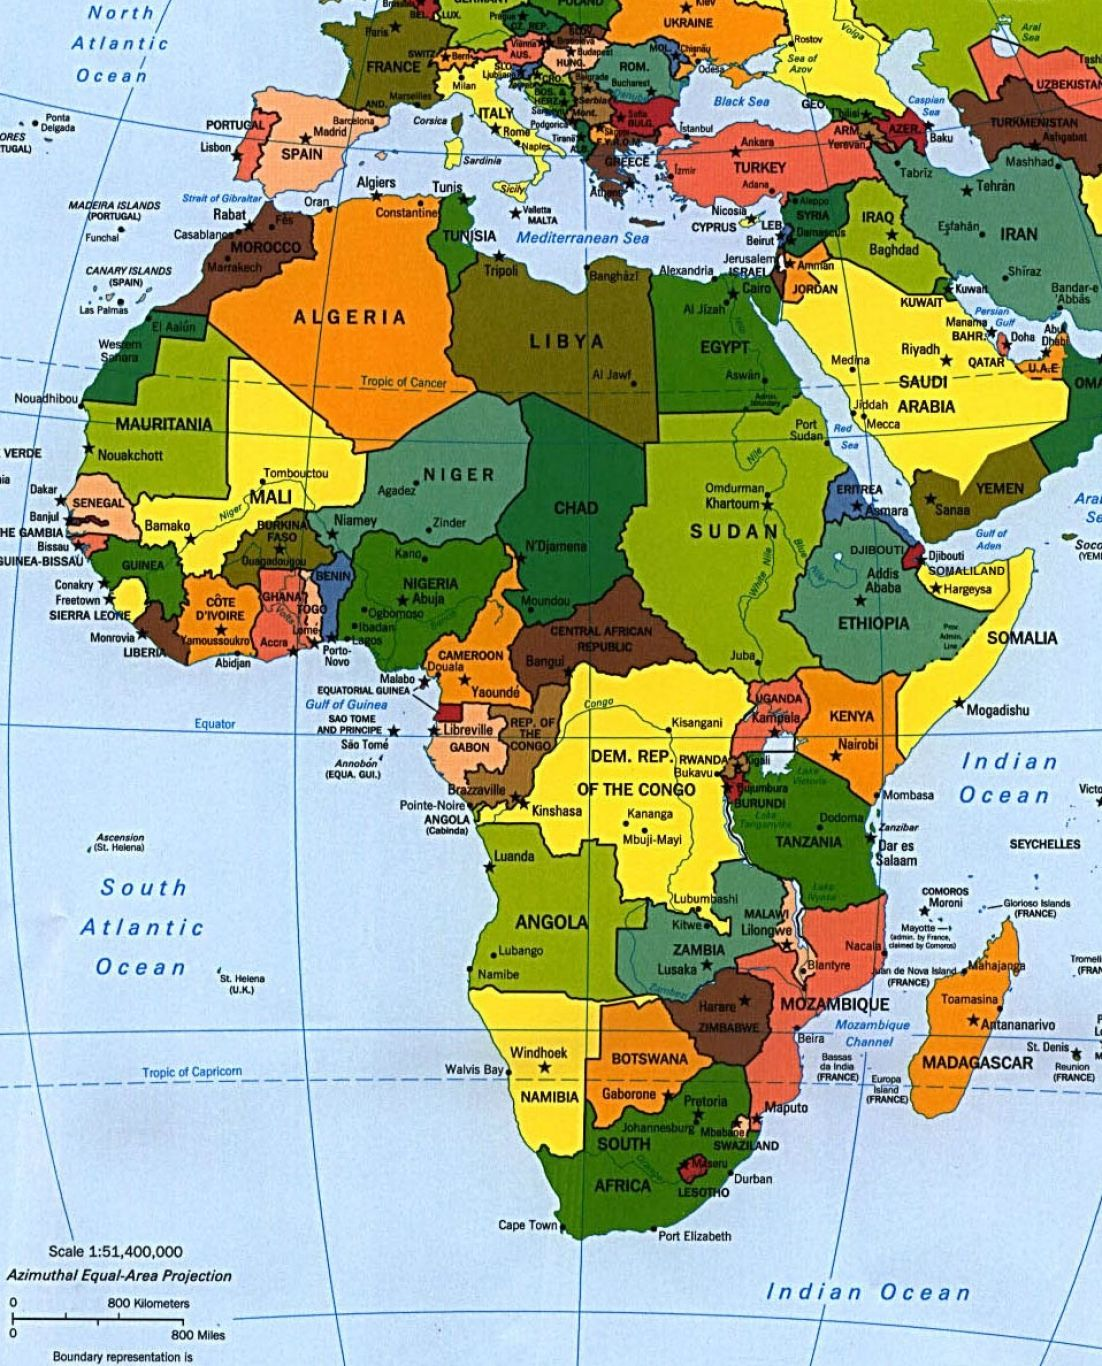 Africa Map With Countries Labeled 2016 Car Release Date